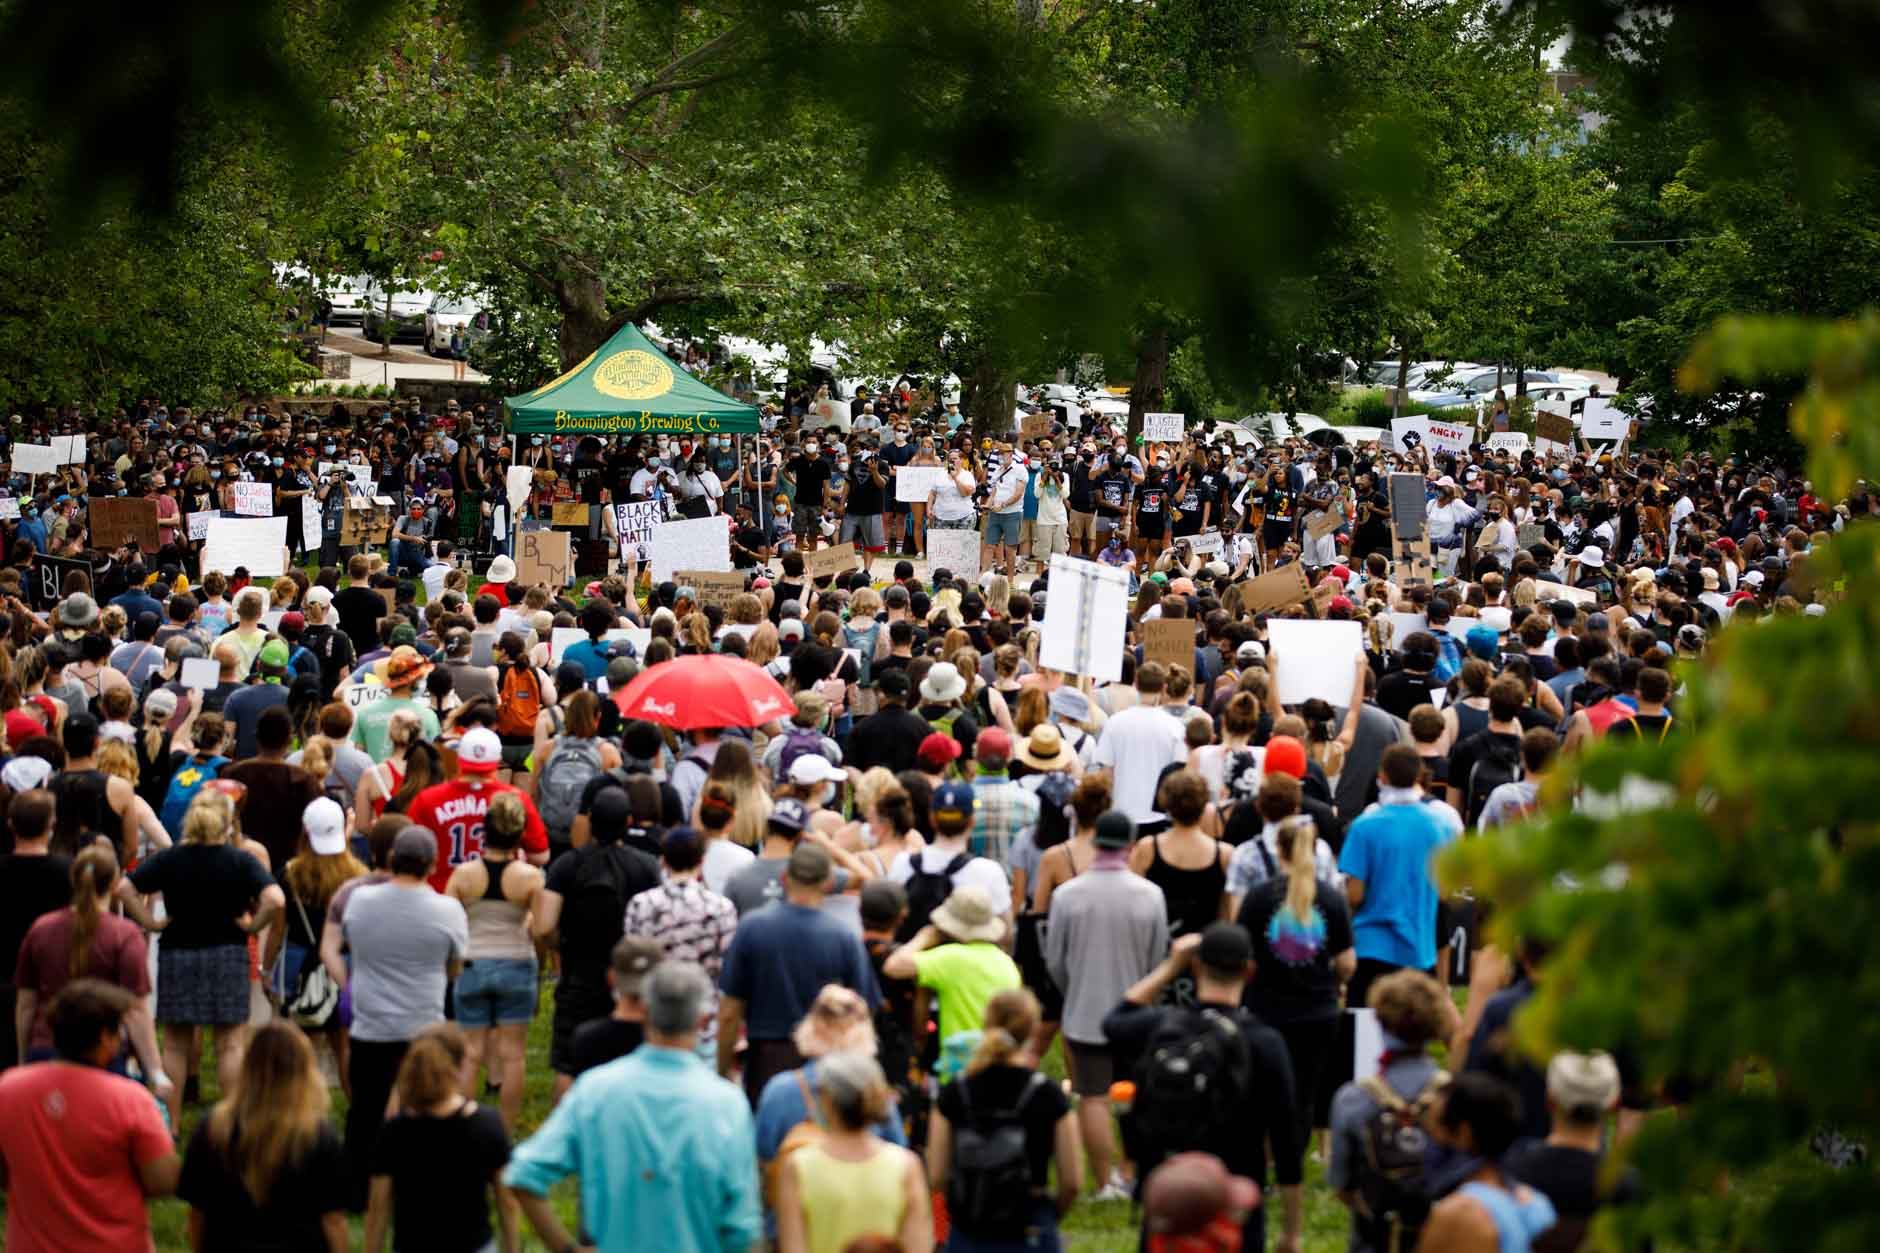 Hundreds gather to peacefully protest police brutality in Dunn Meadow at Indiana University Bloomington on Friday, June 5, 2020. (James Brosher/Indiana University)